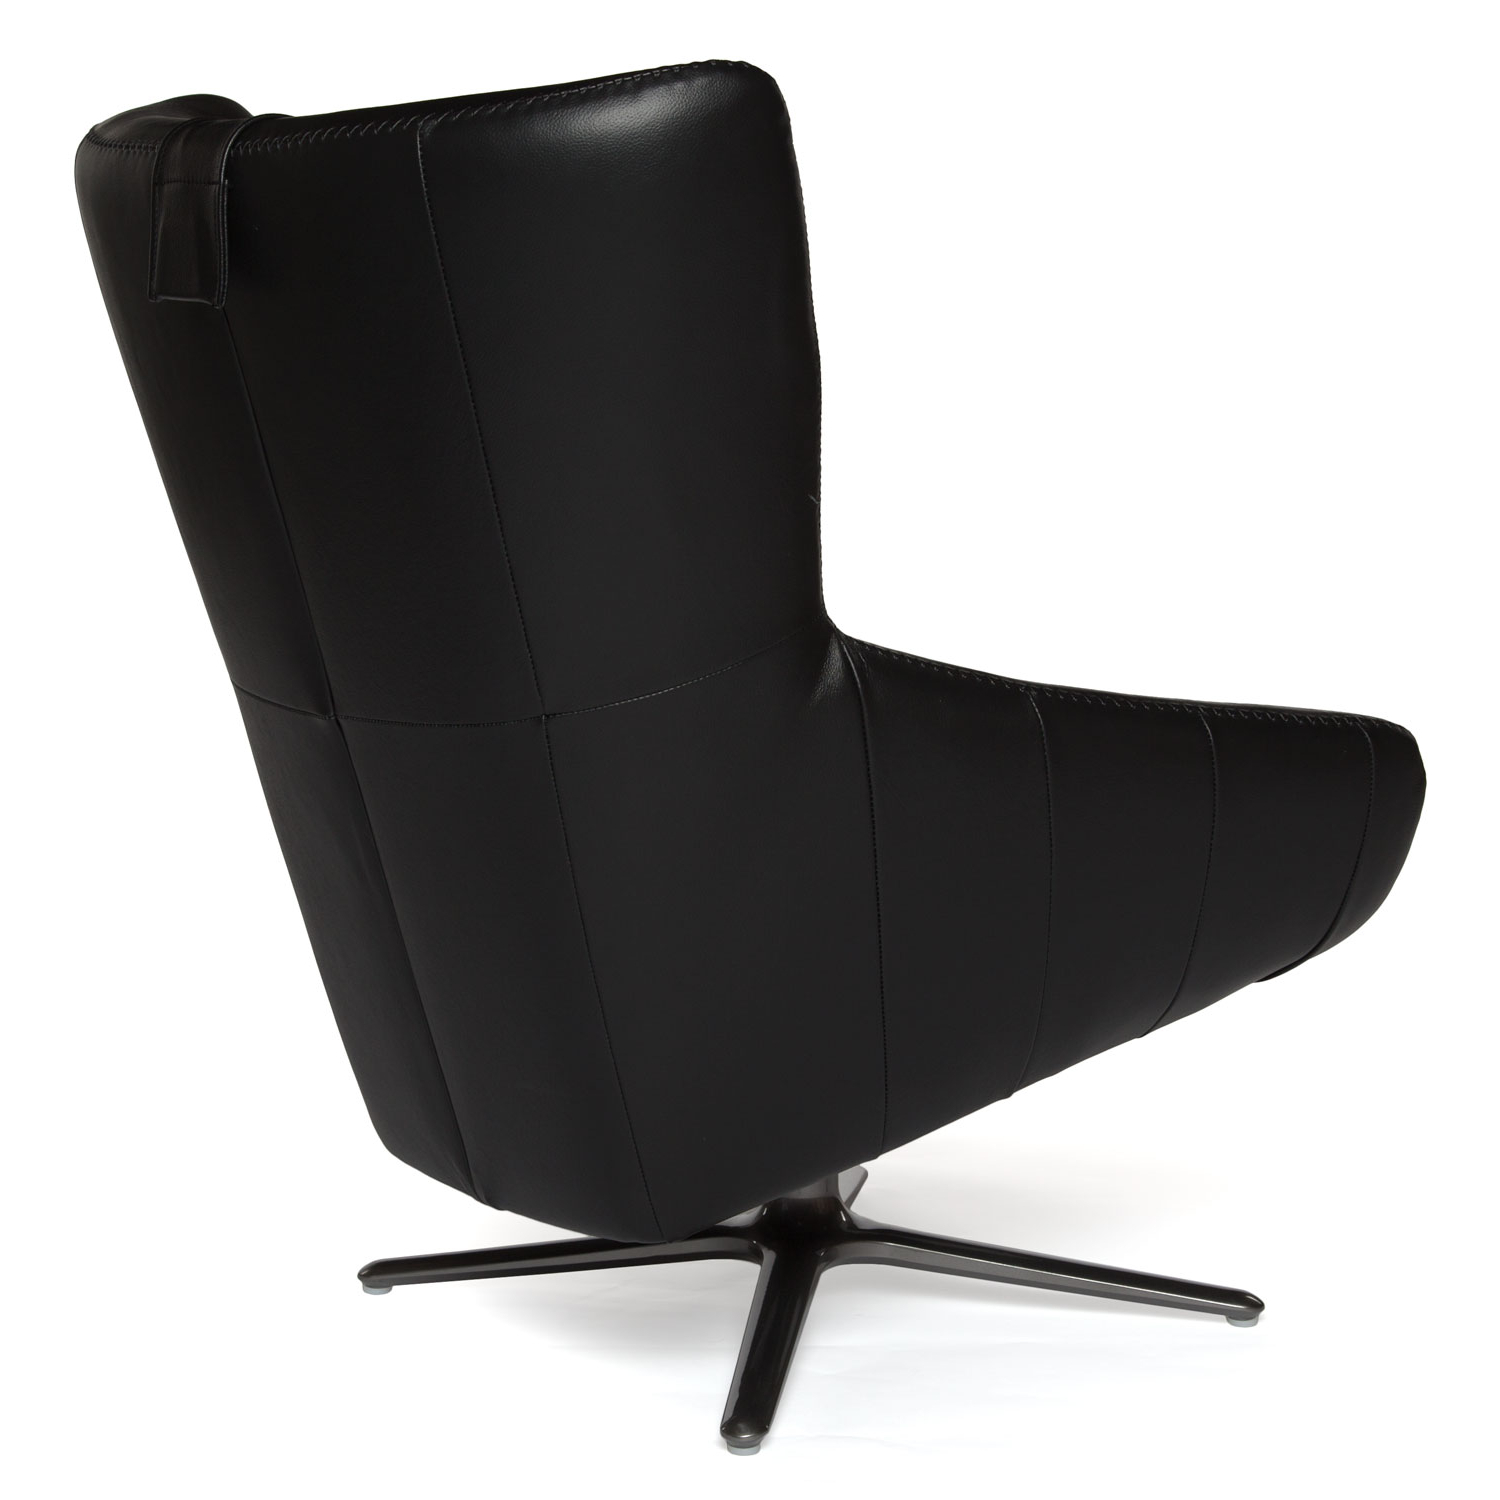 Black Leather Swivel Chair Within Recent Leather Black Swivel Chairs (Gallery 1 of 20)